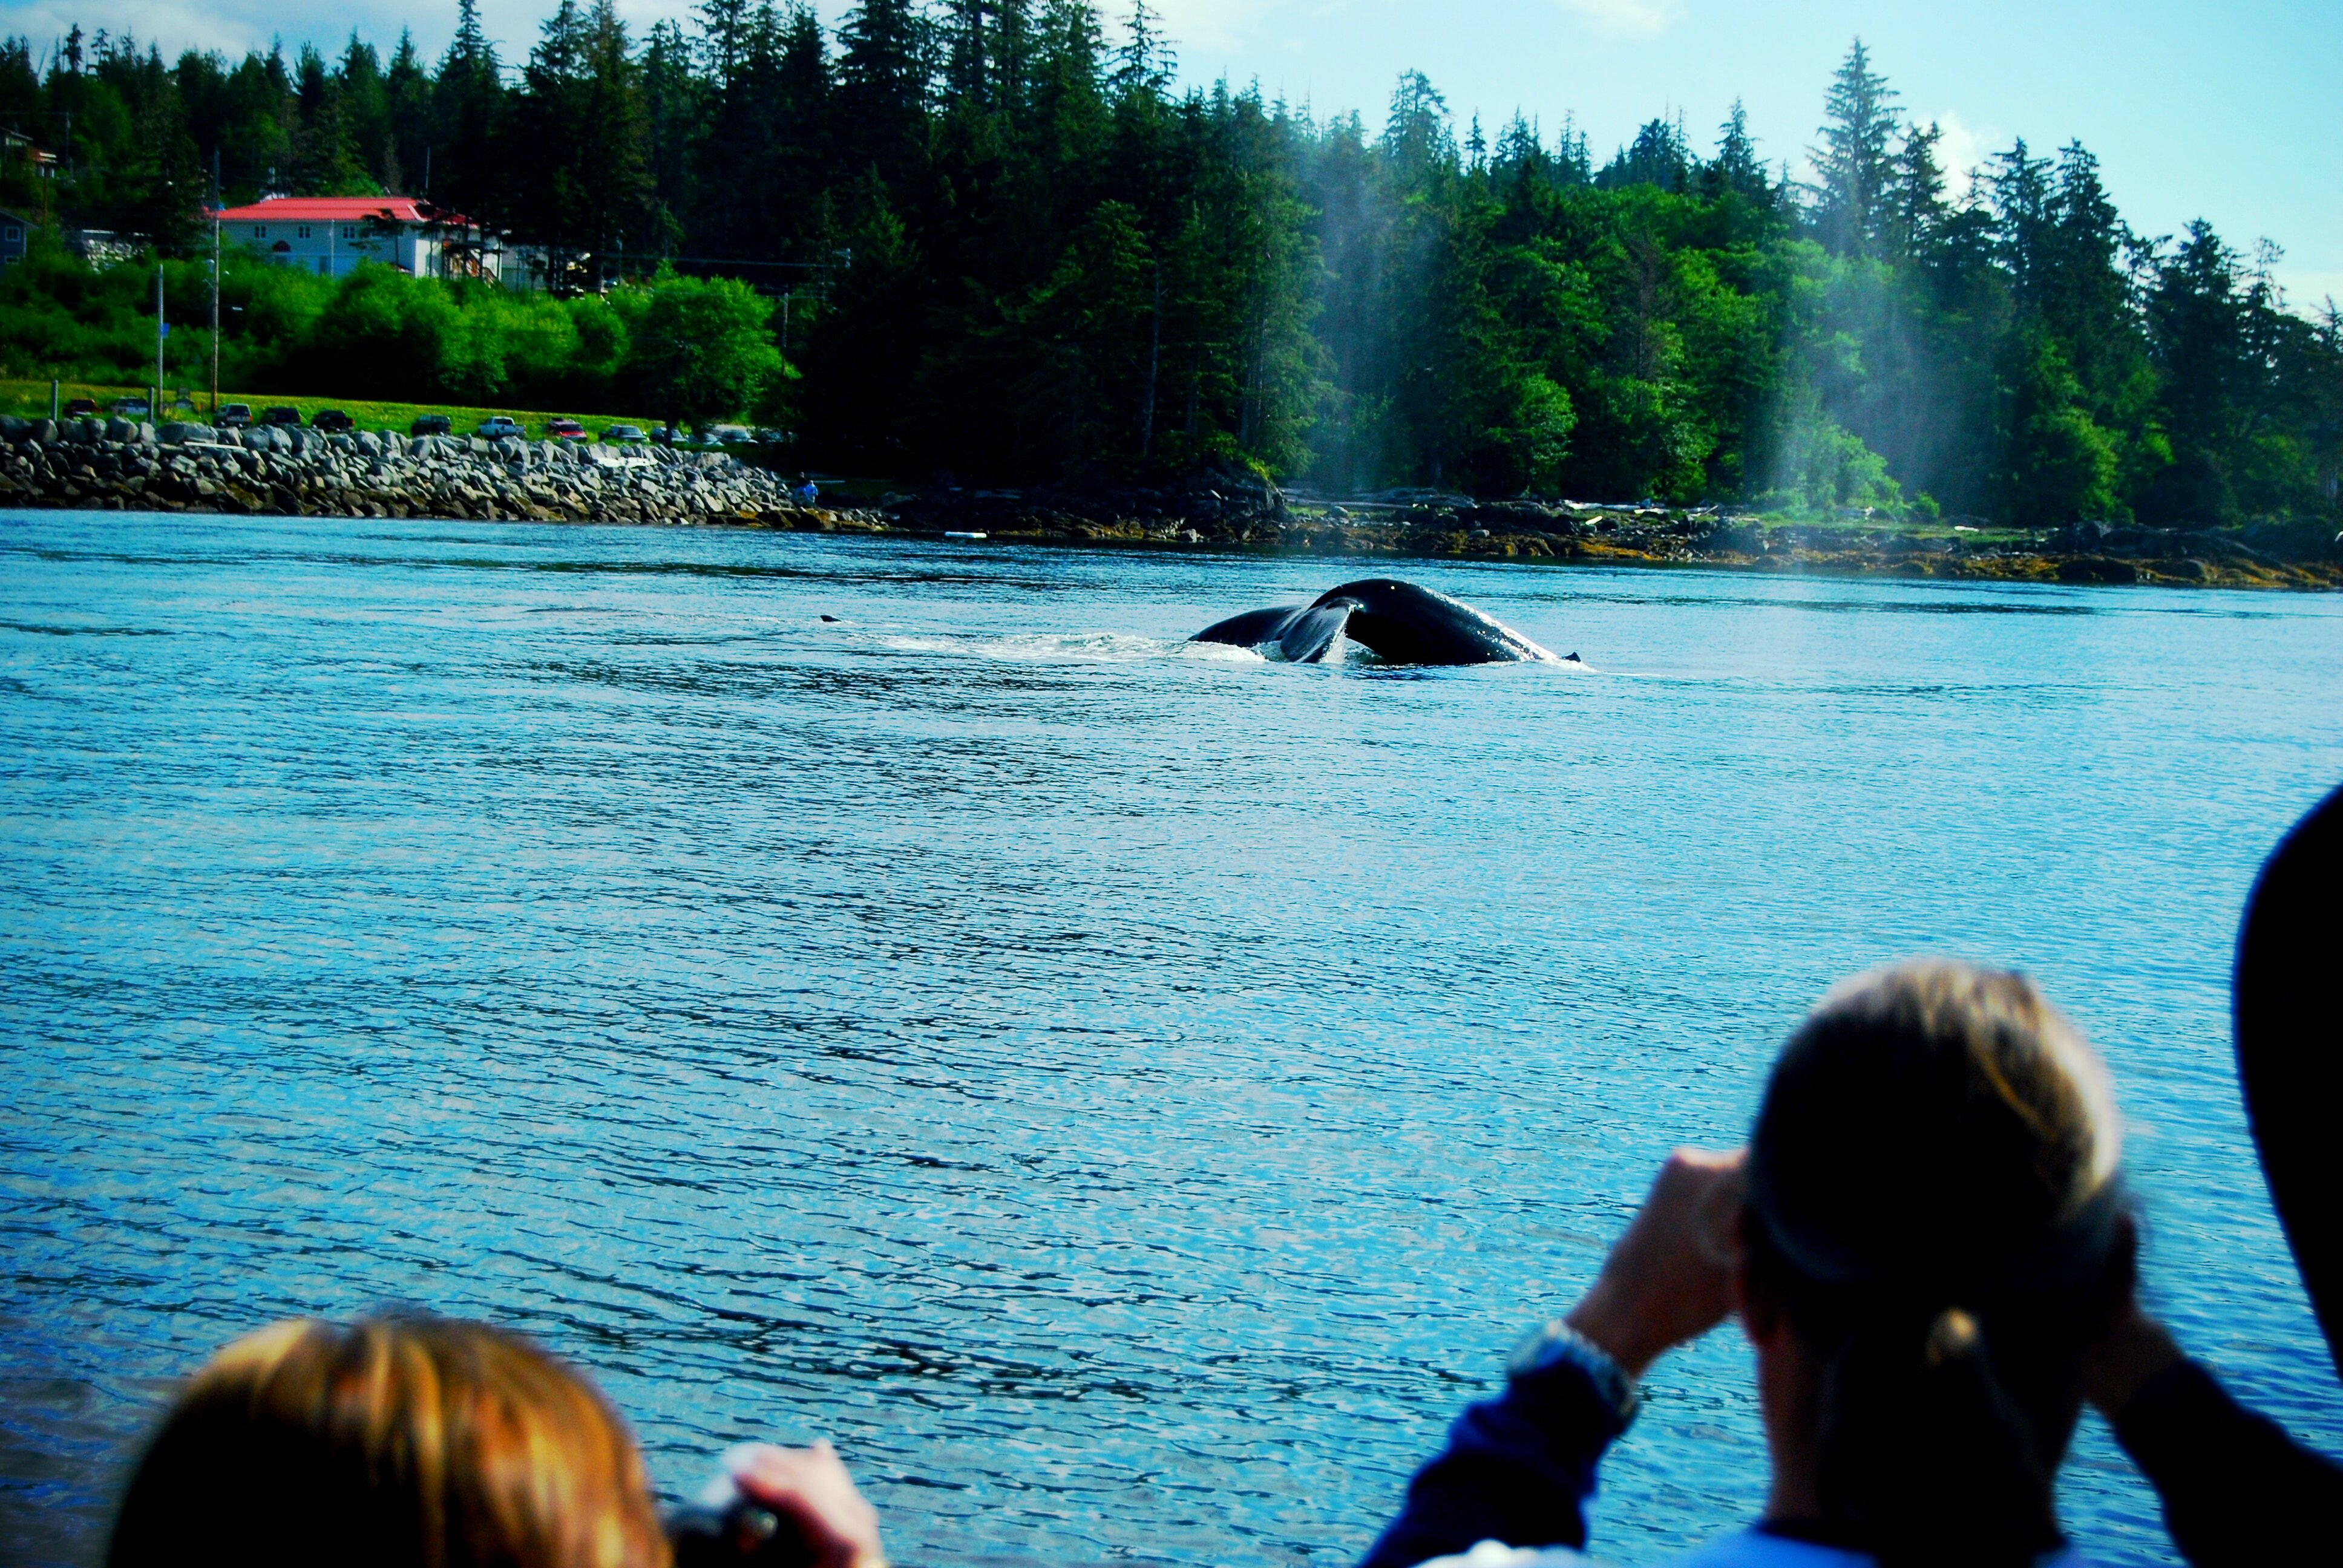 Viewing Humpback Whales in Icy Straits